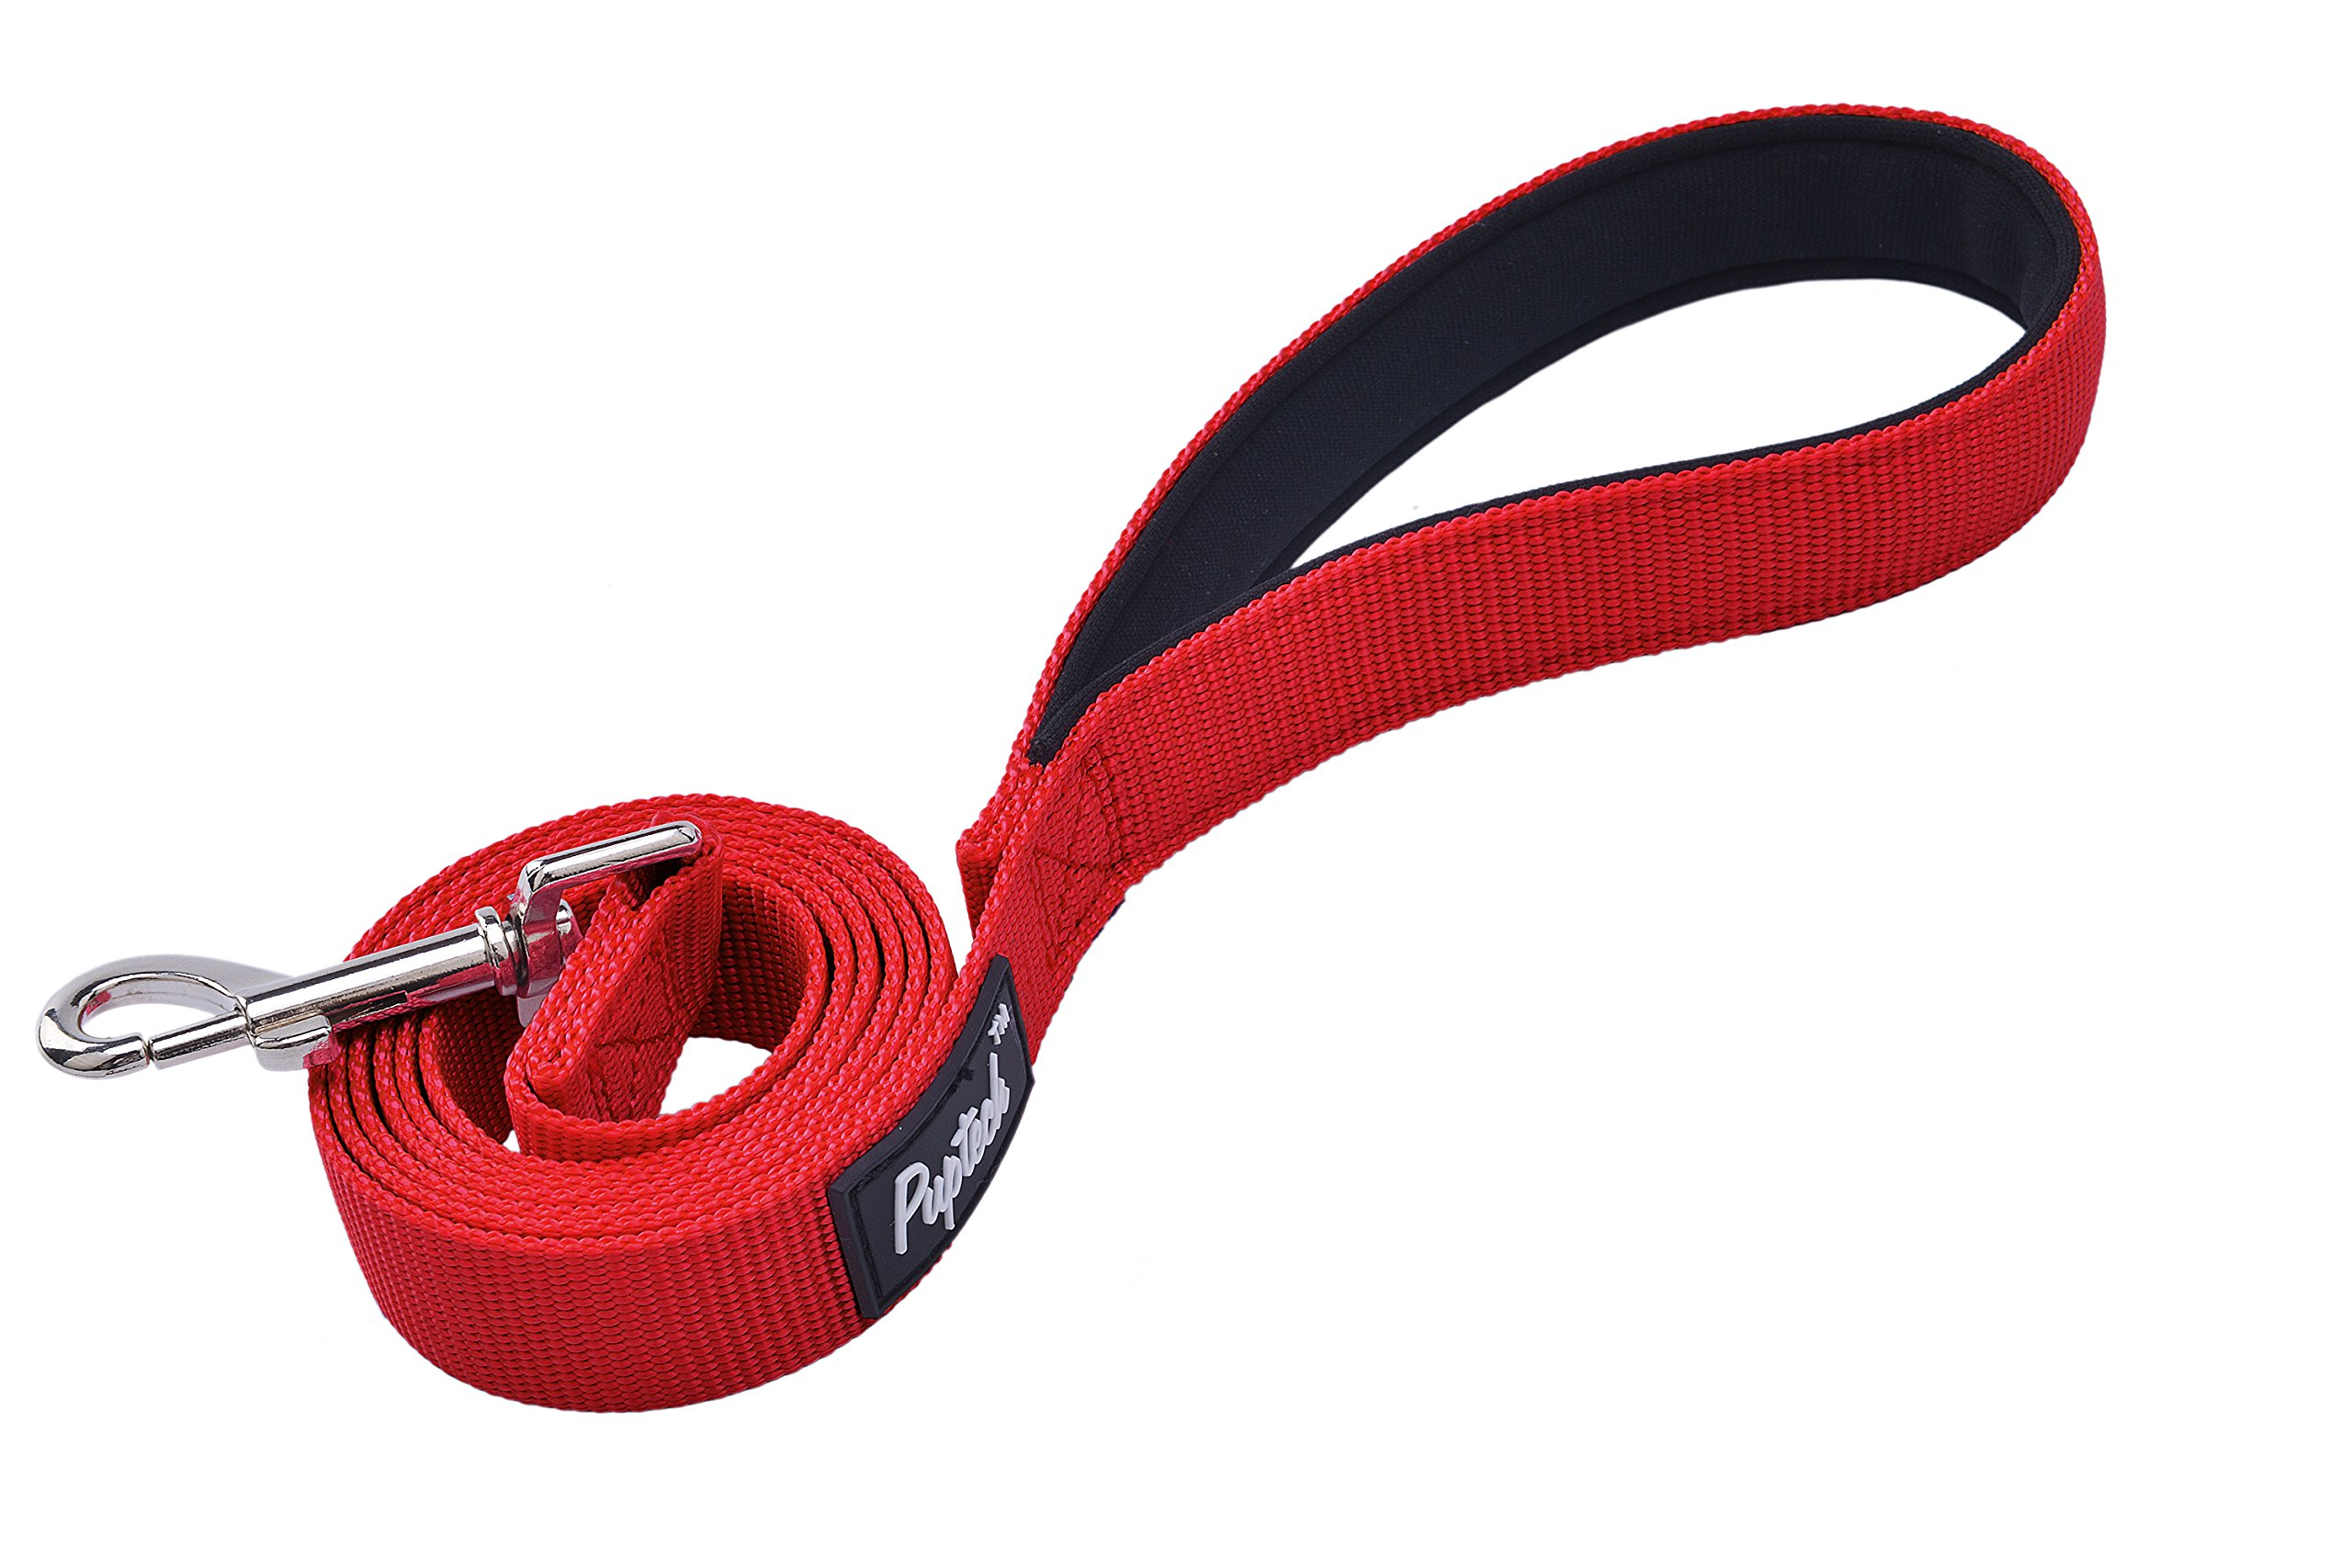 PUPTECK Dog Training Leash Durable Nylon Lead with Padded Handle for Pet Puppy